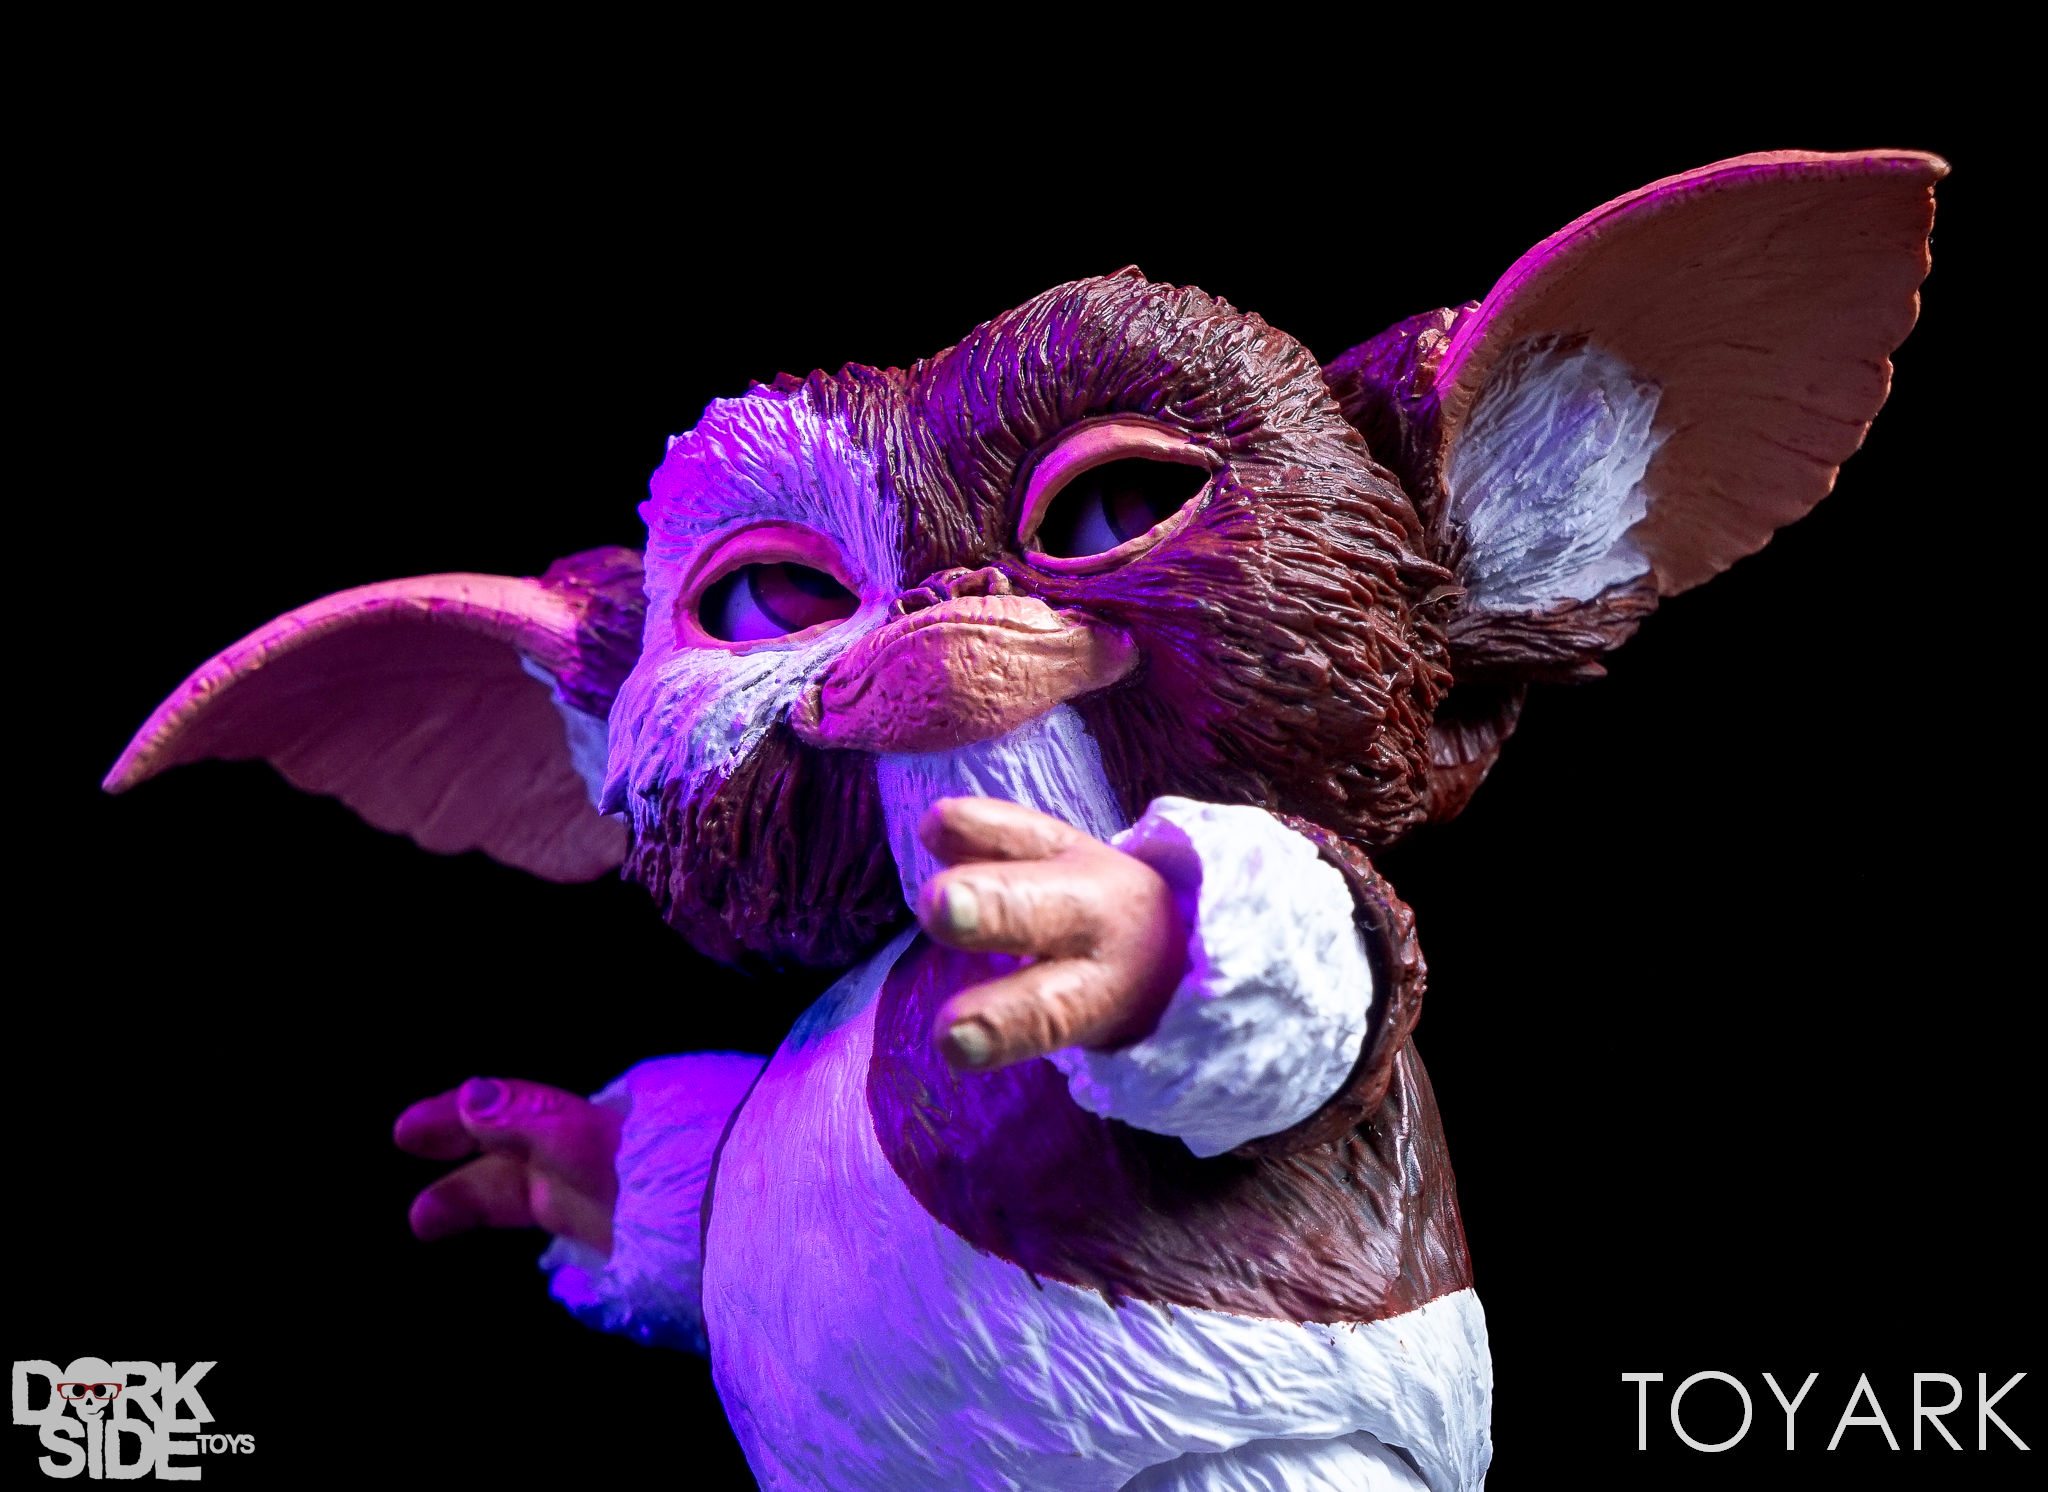 http://news.toyark.com/wp-content/uploads/sites/4/2017/04/NECA-Gremlins-Ultimate-Gizmo-023.jpg